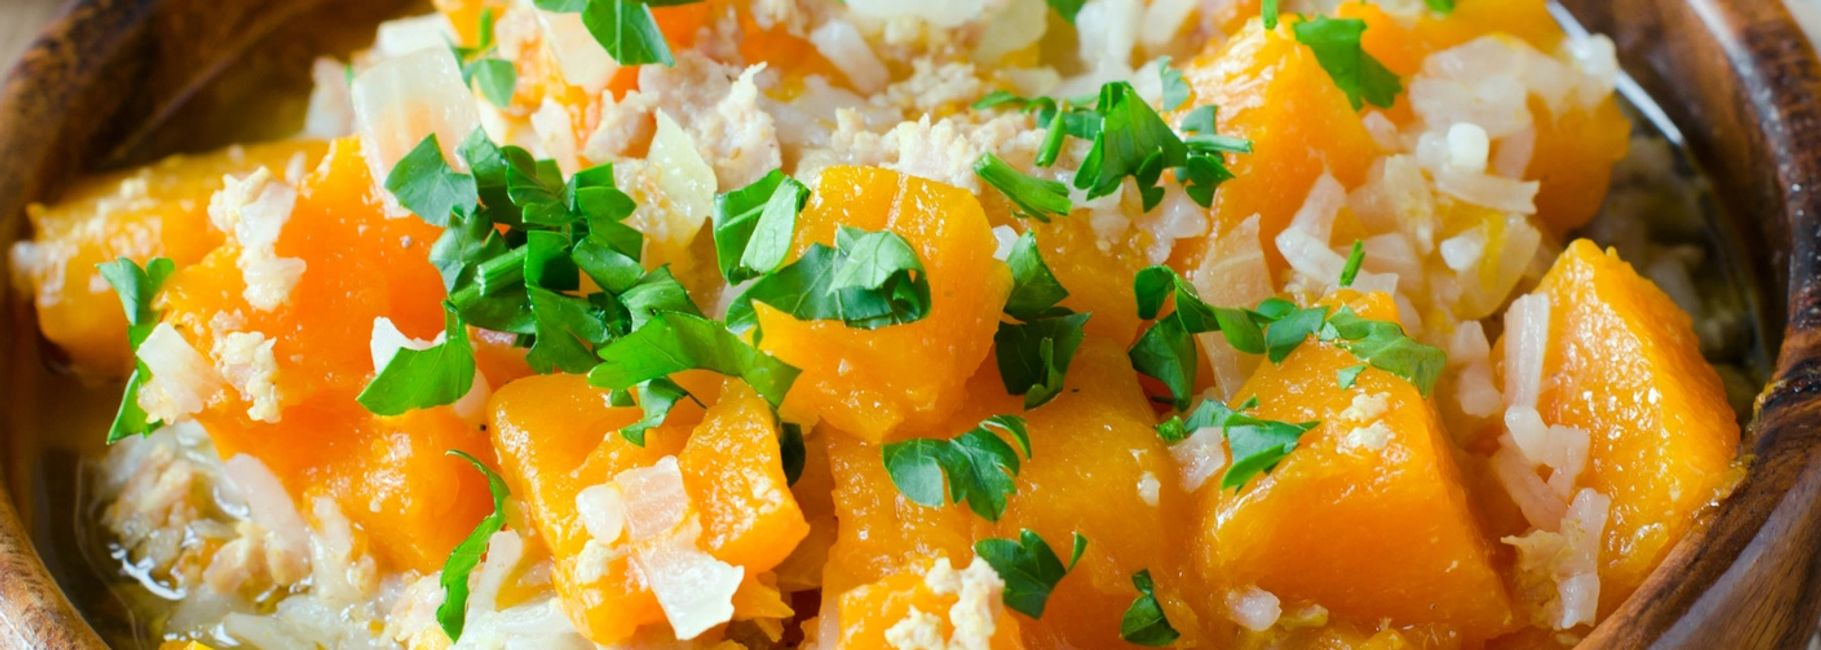 Penne with Butternut Squash & Goat Cheese